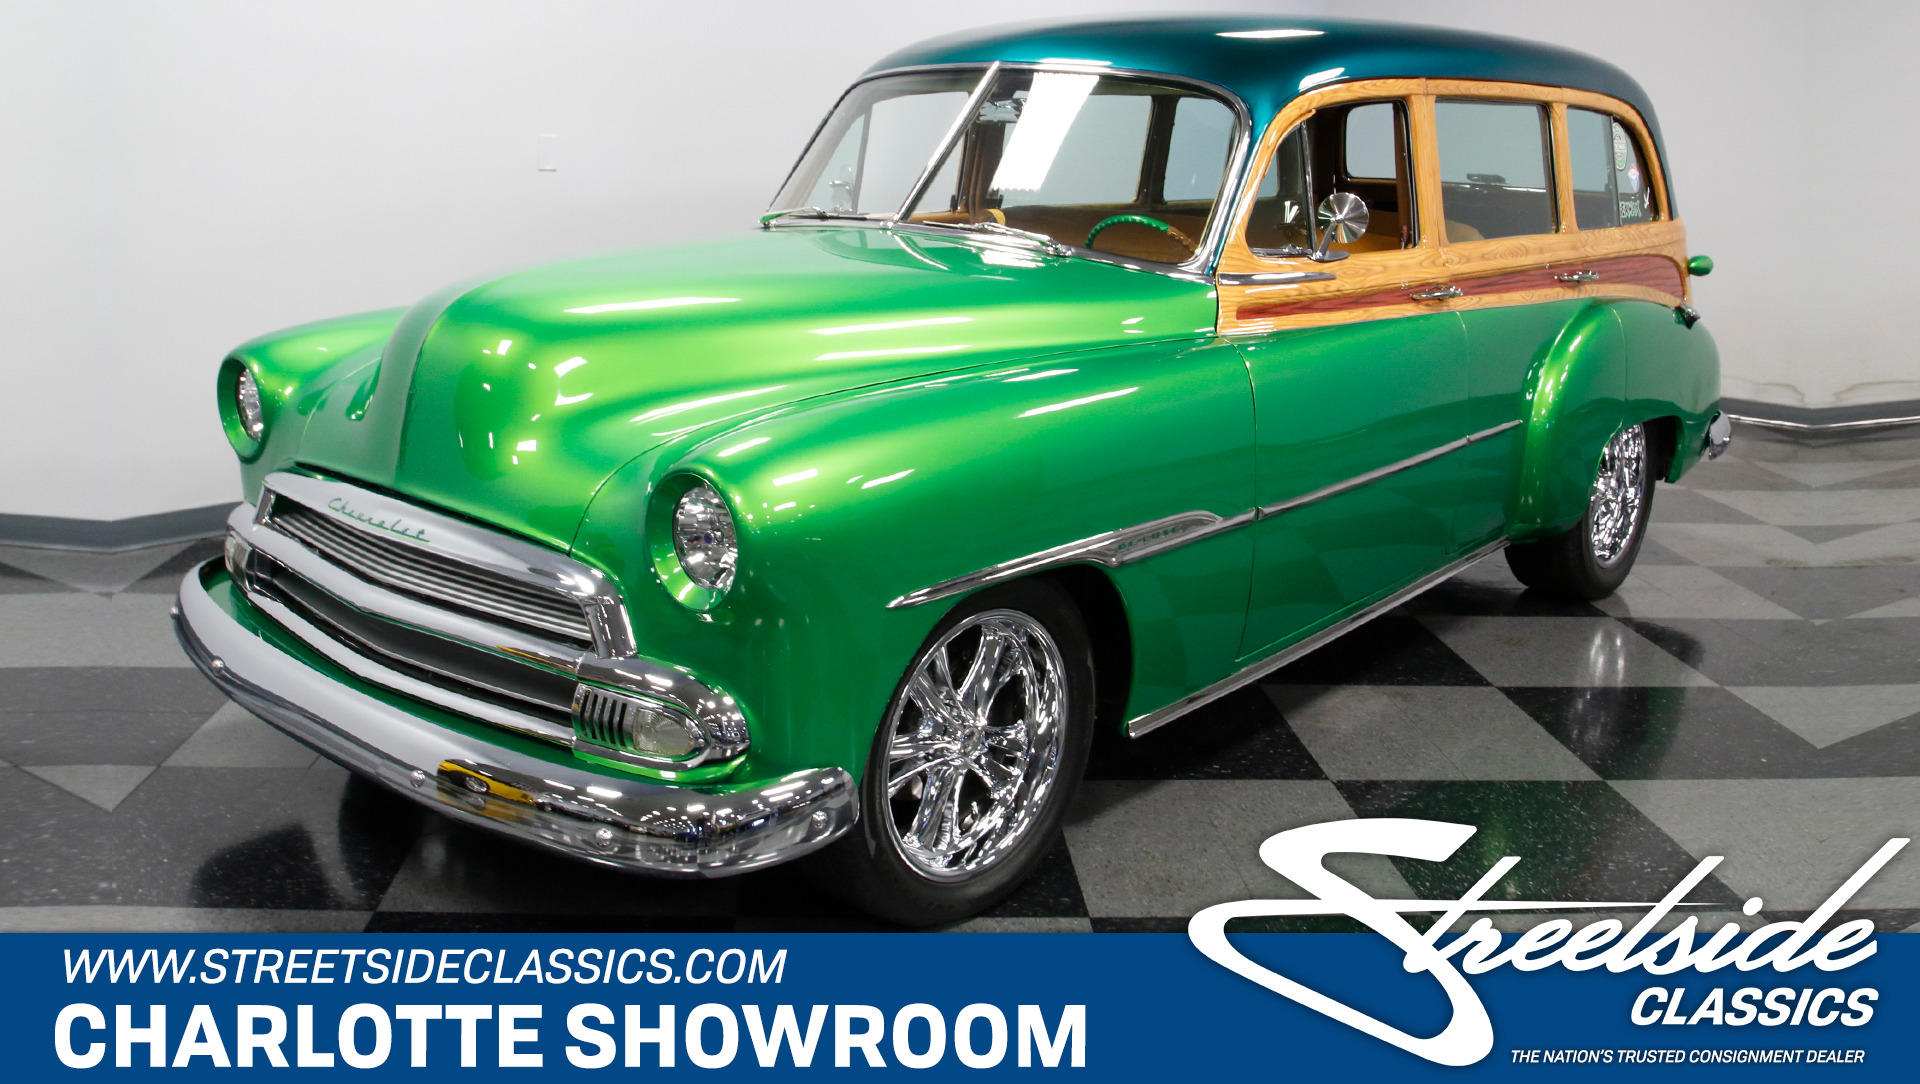 1951 Chevrolet Custom Deluxe Streetside Classics The Nations 2 Door Spincar View Play Video